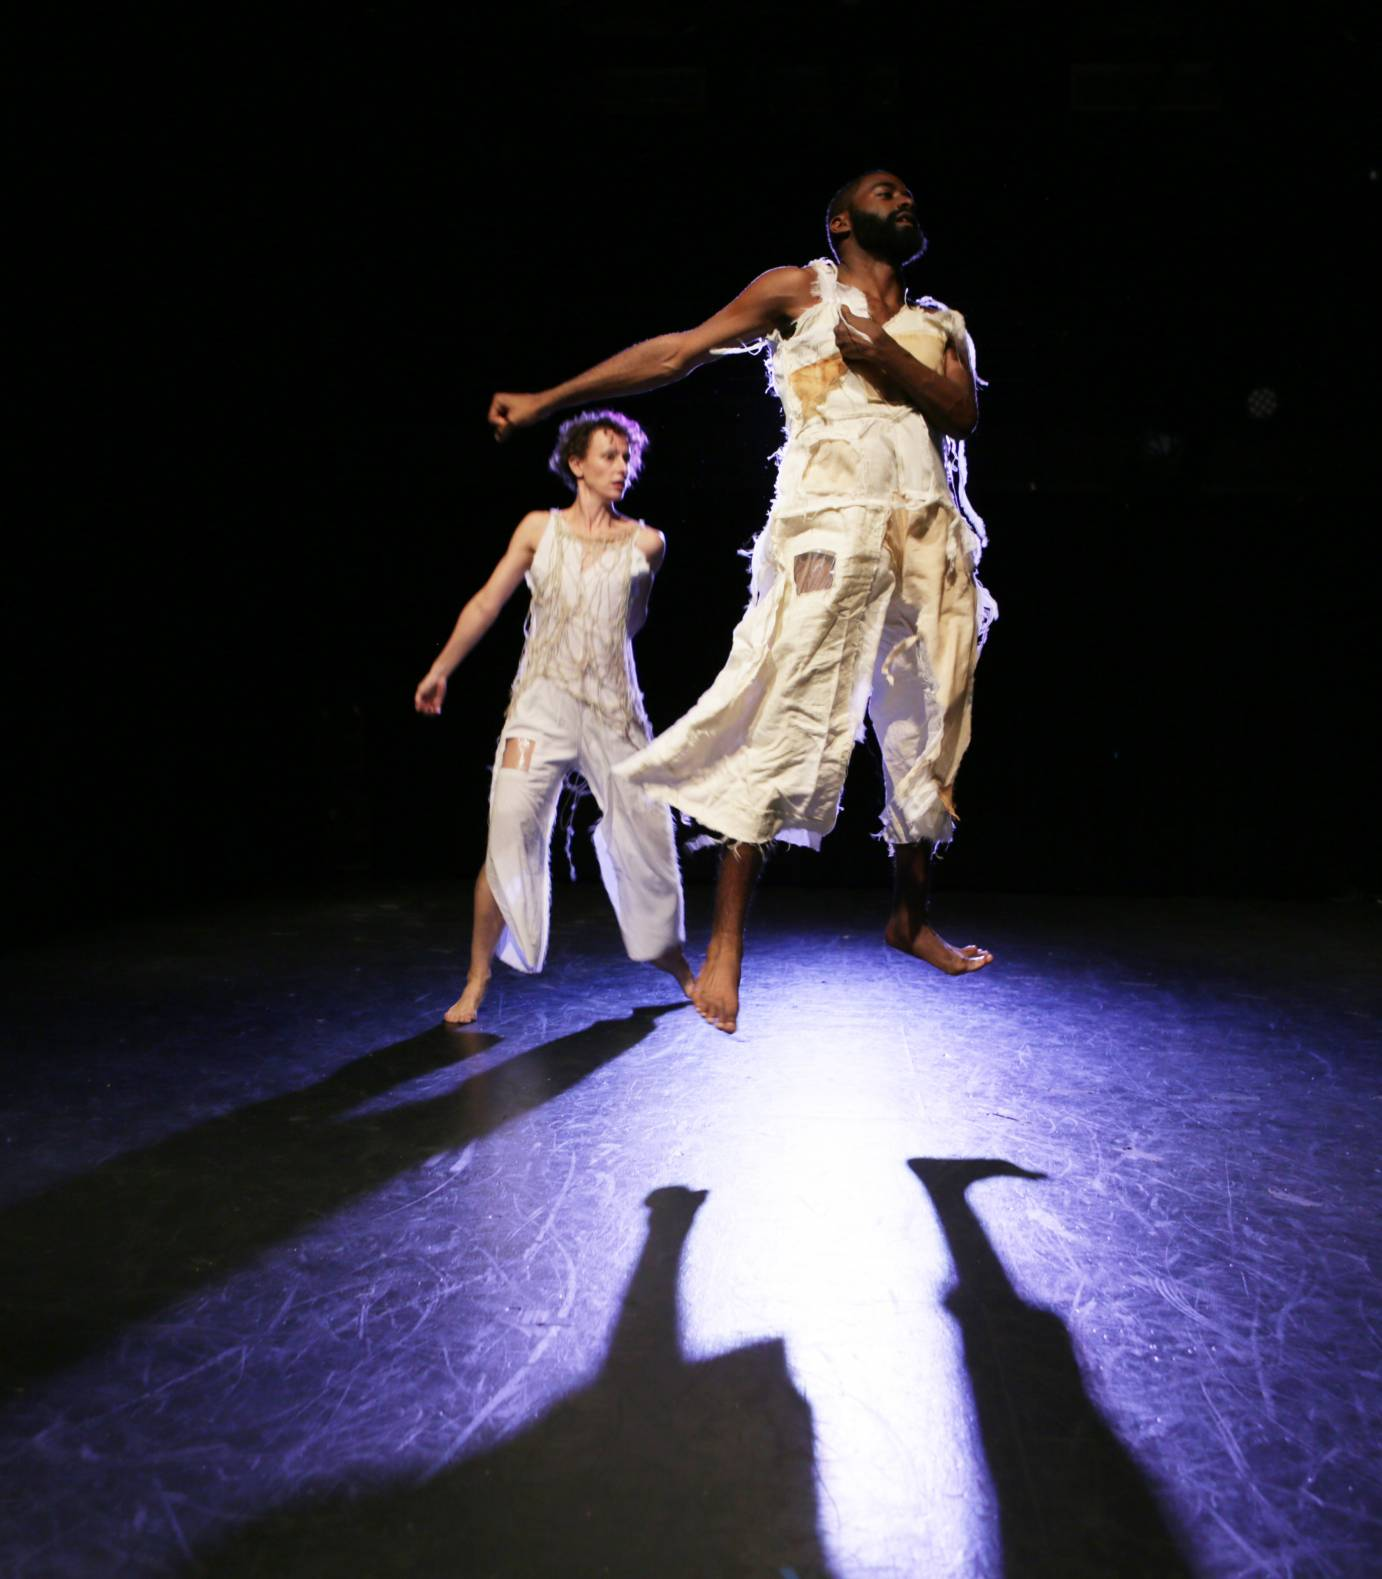 Two dancers jump with flexed feet